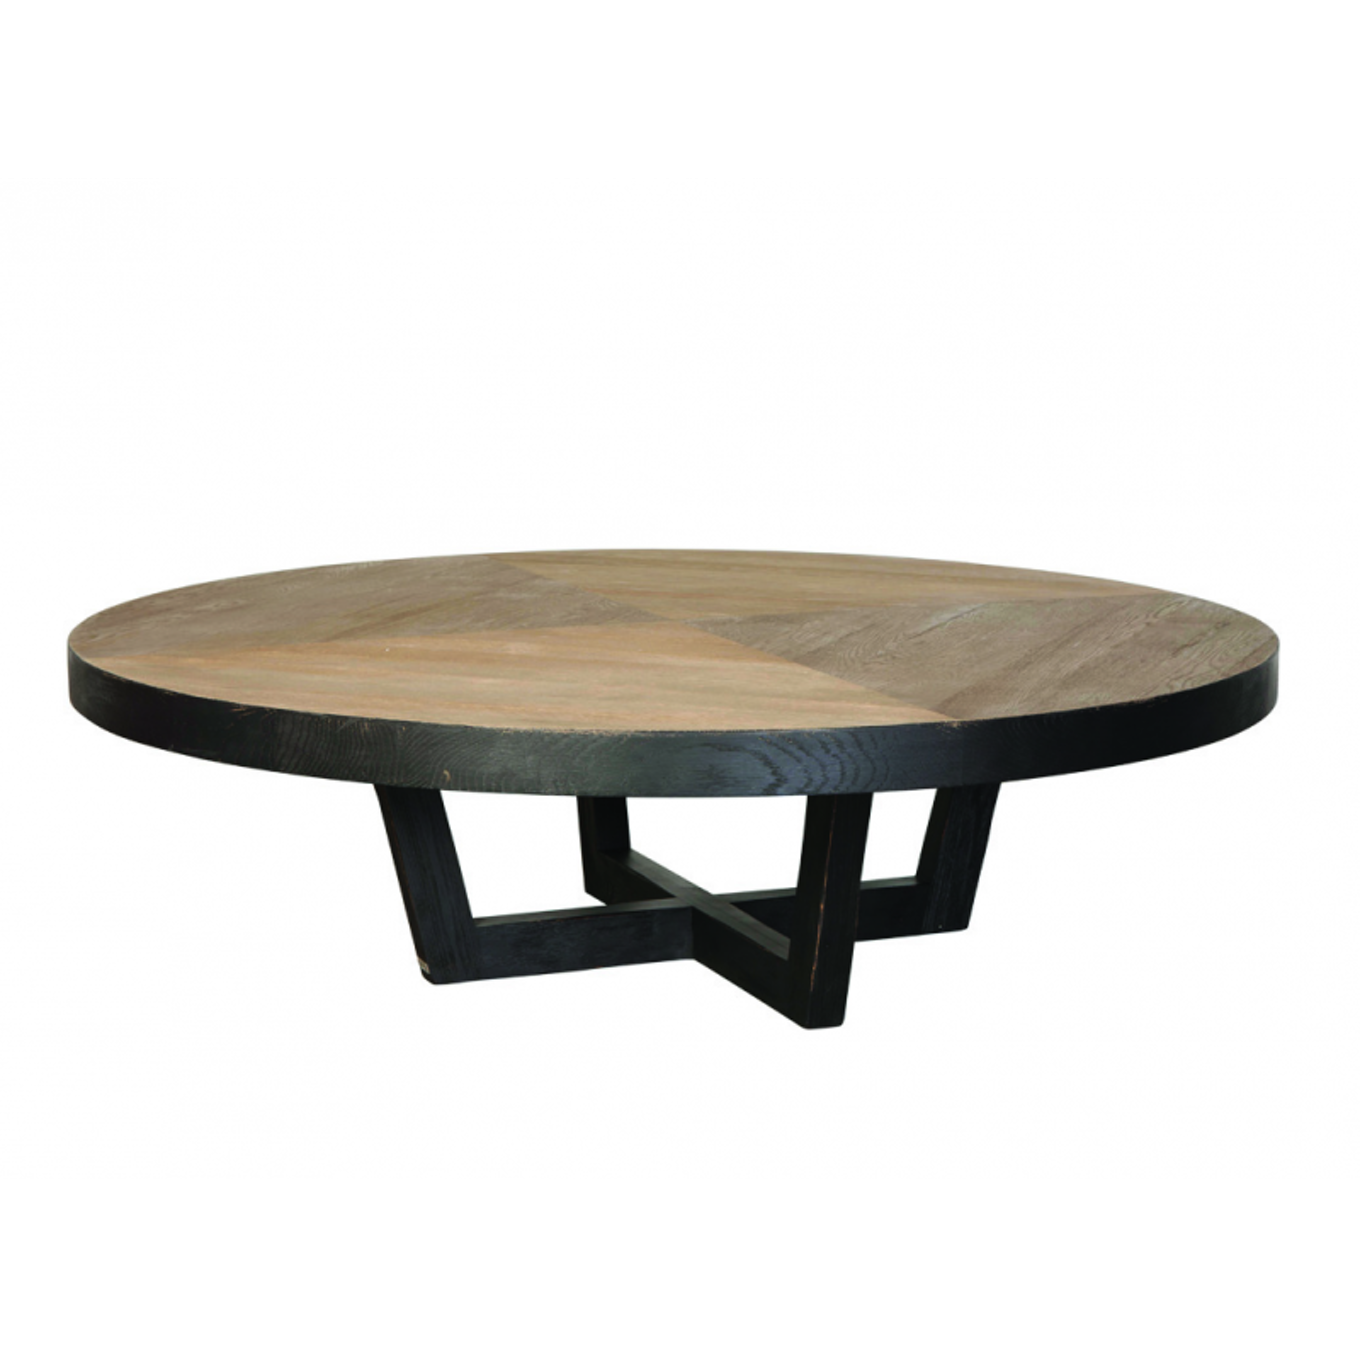 table basse ronde osier avec pouf mobilier design. Black Bedroom Furniture Sets. Home Design Ideas